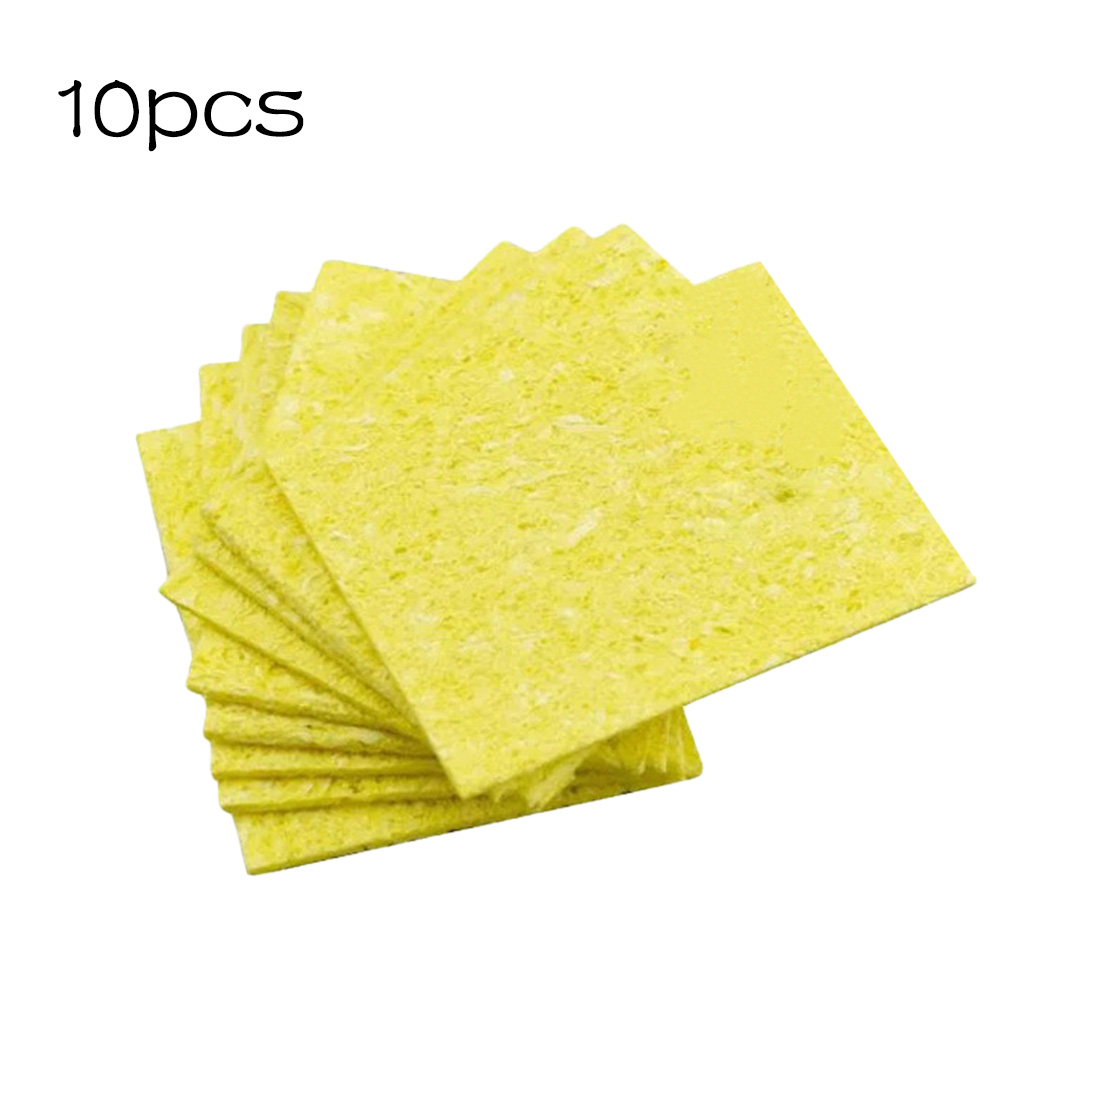 Hot sell 10pcs//lot High Temperature Resistant Heatstable Solder thick Sponge